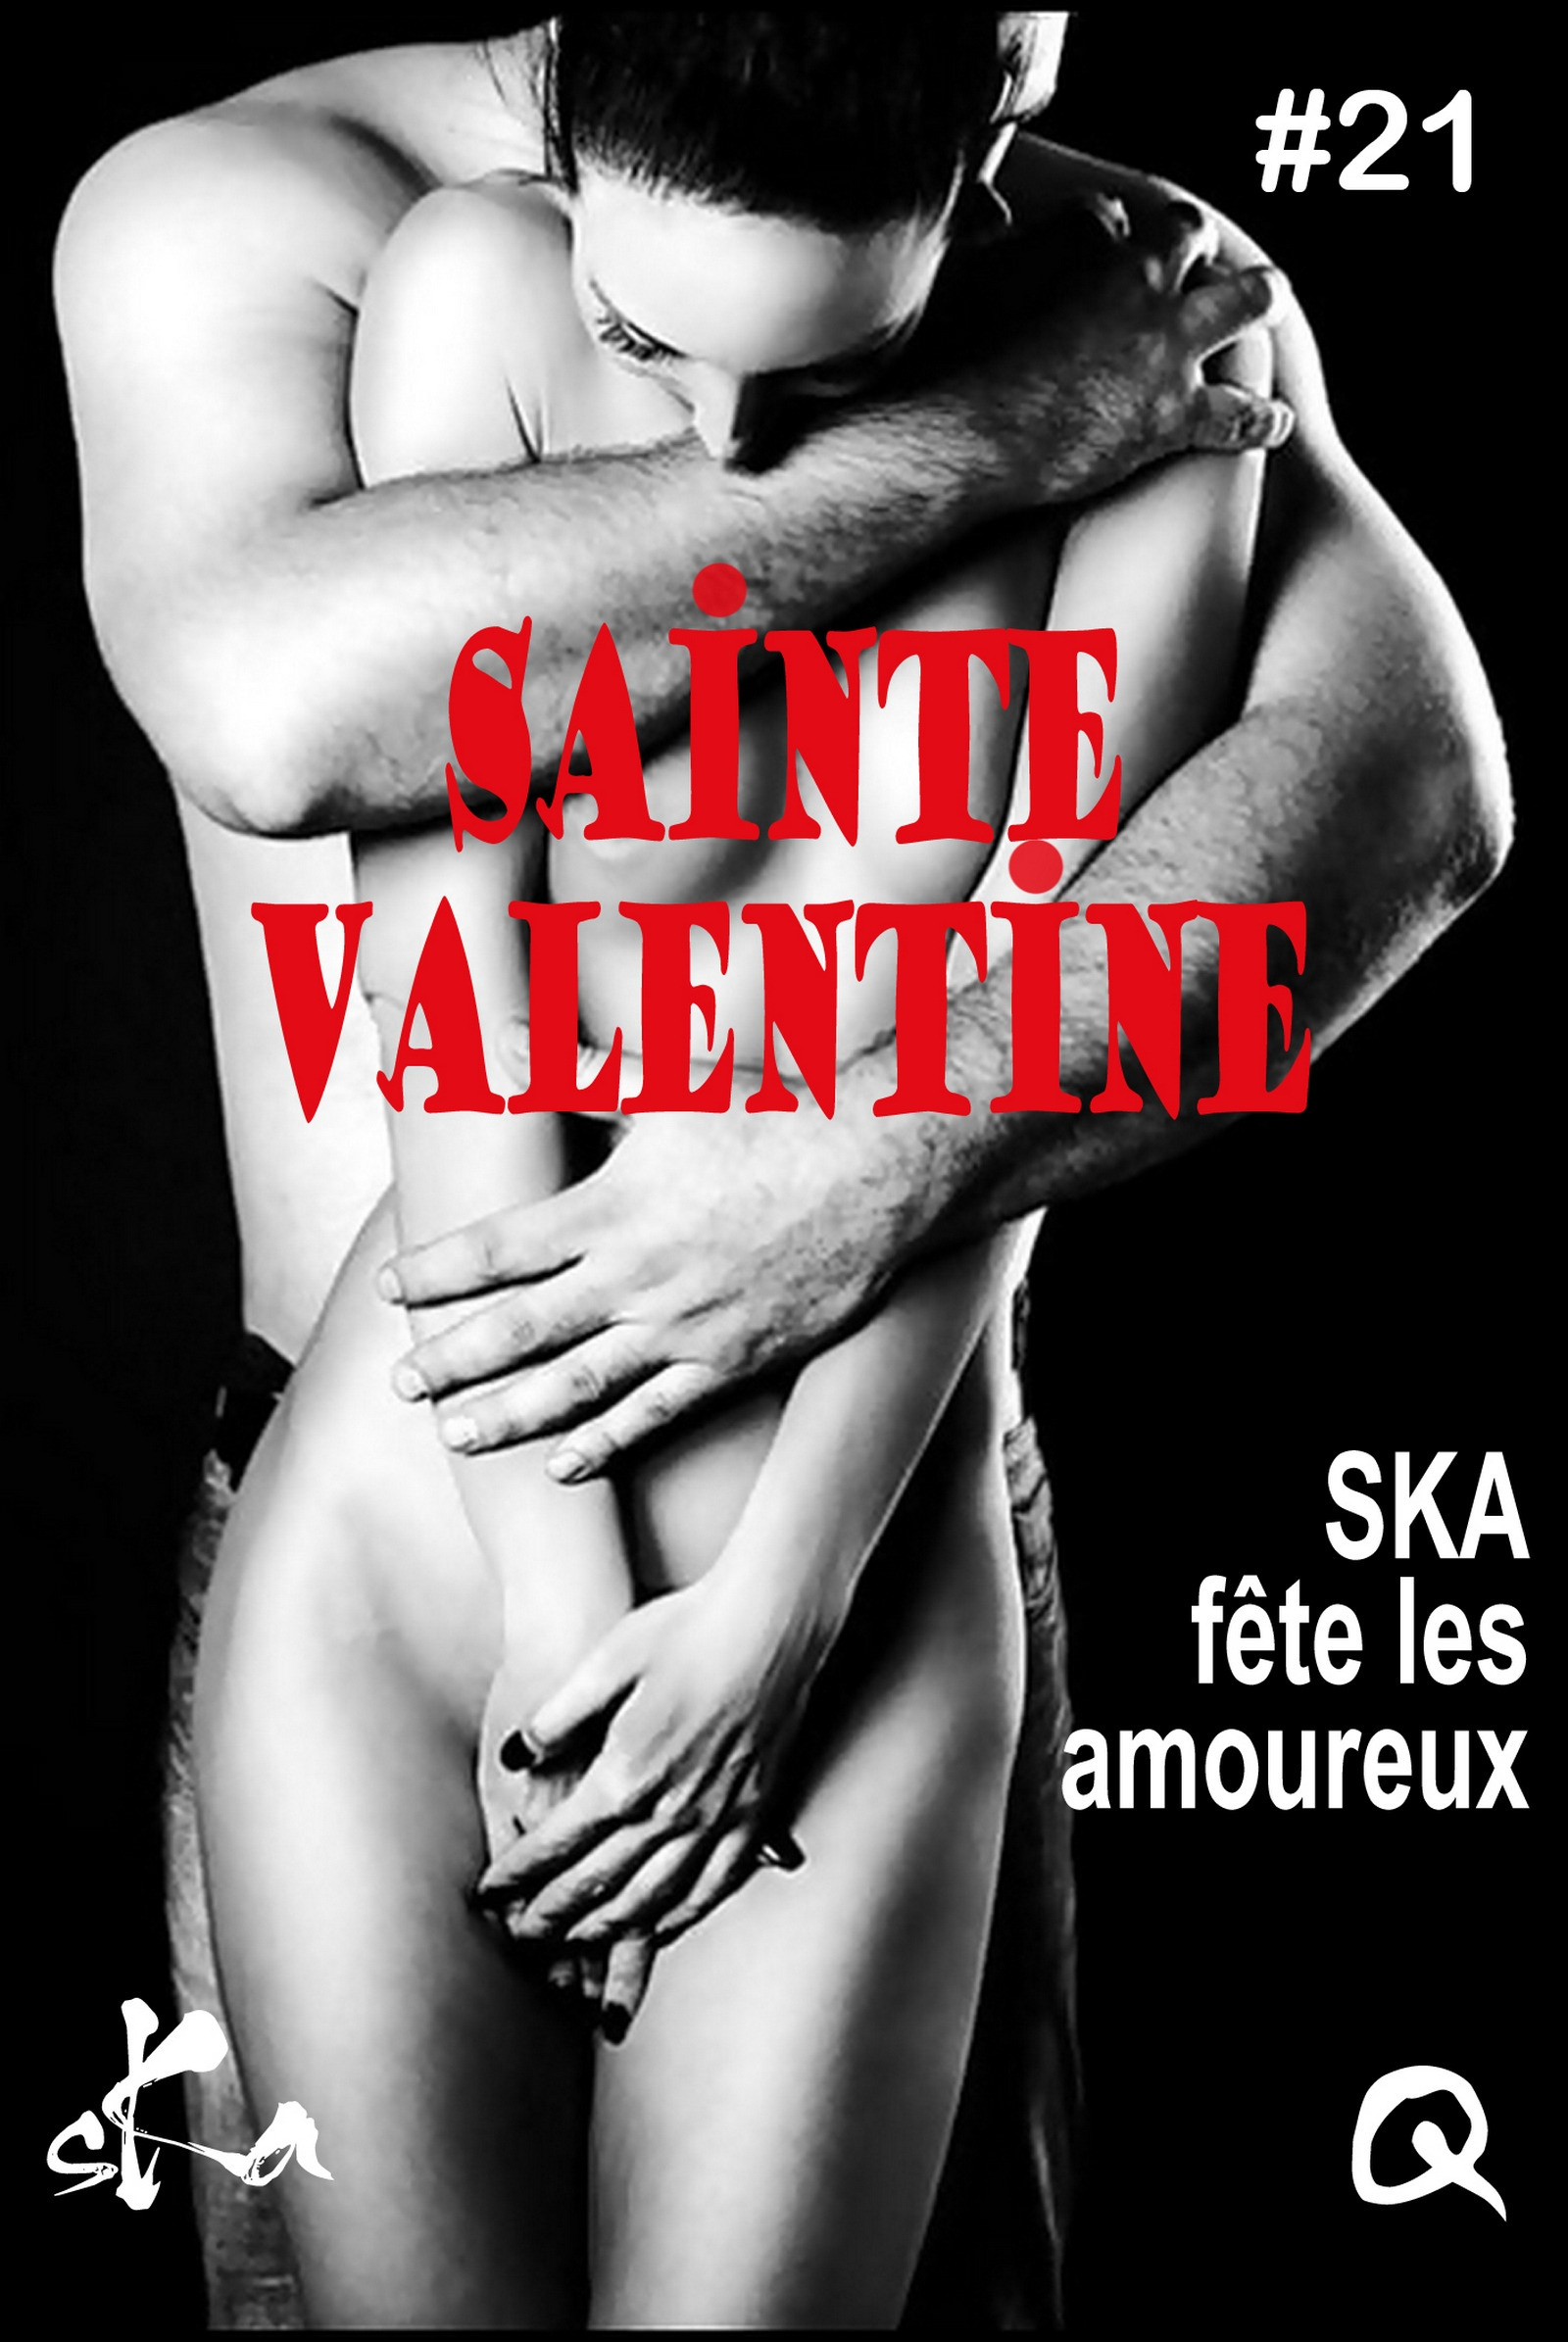 Sainte Valentine #21  - . Collectif